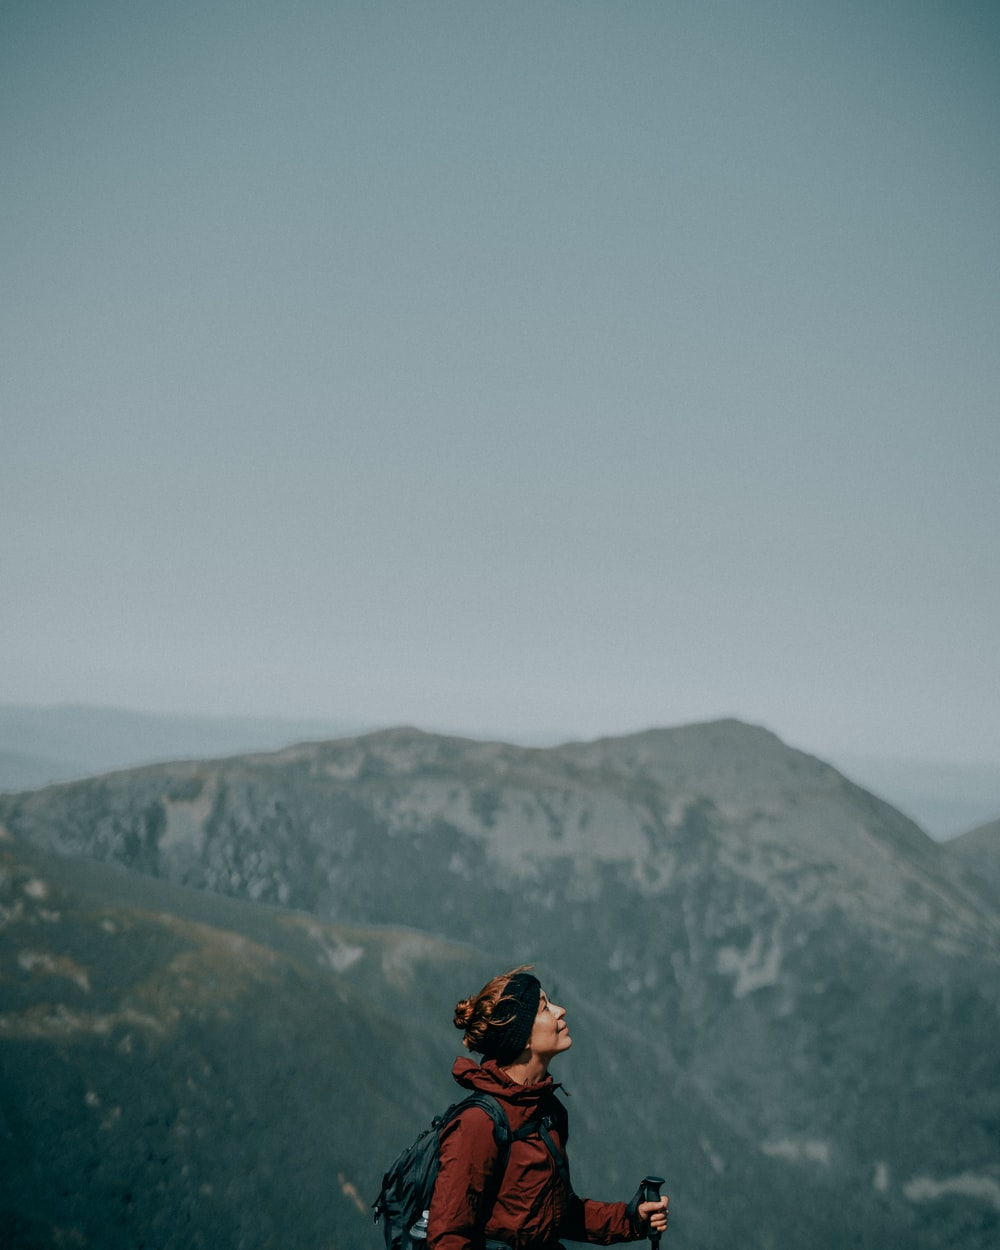 man in black jacket and black backpack standing on mountain during daytime